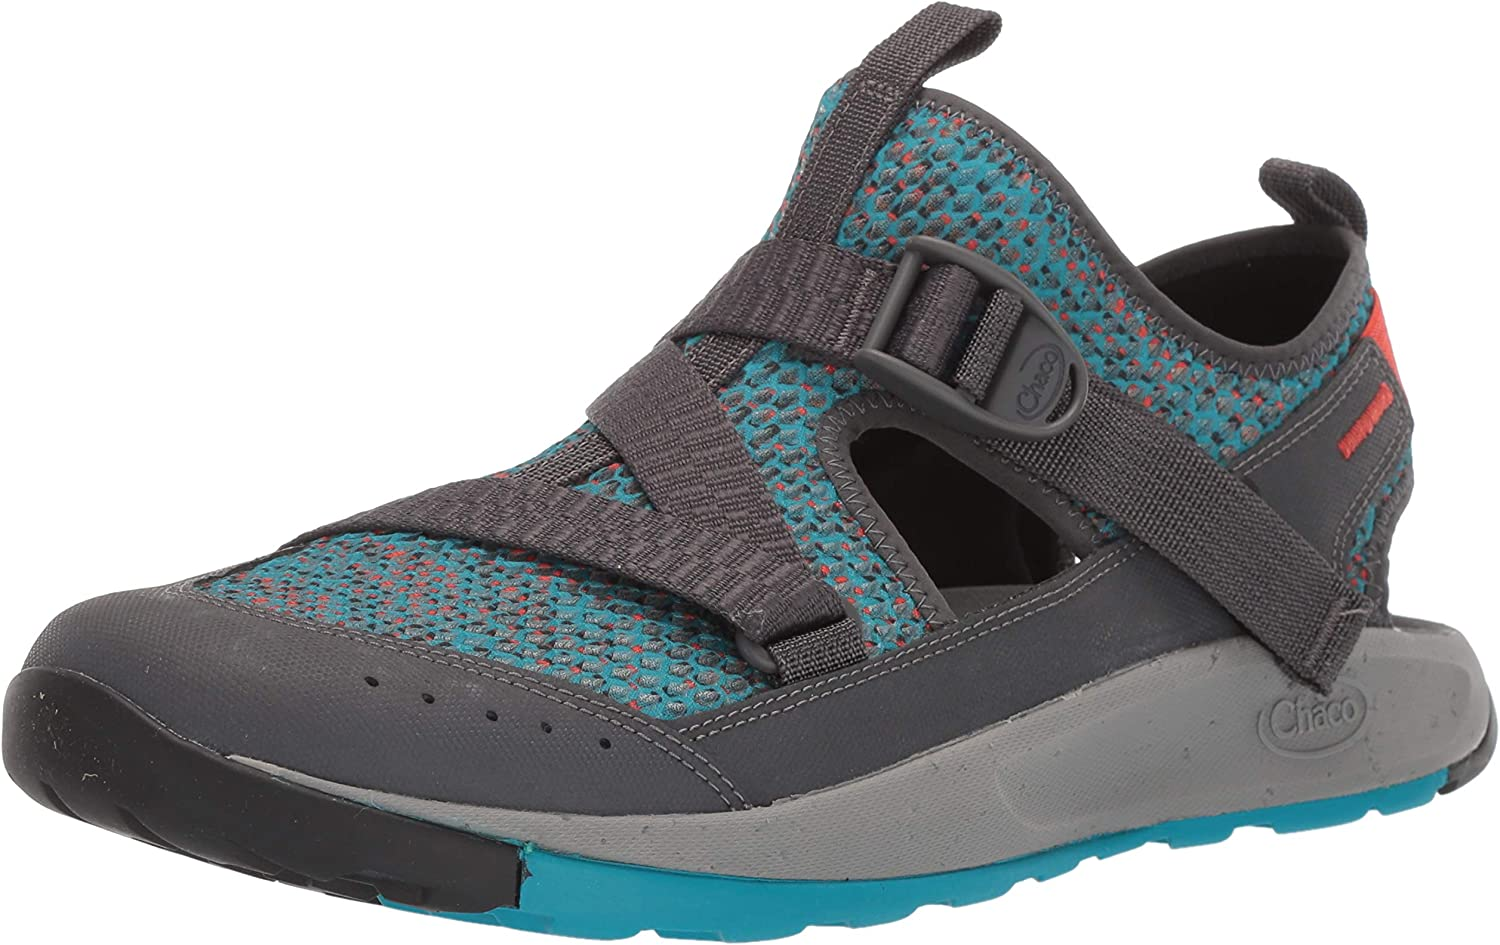 Chaco Womens Odyssey Hiking shoes